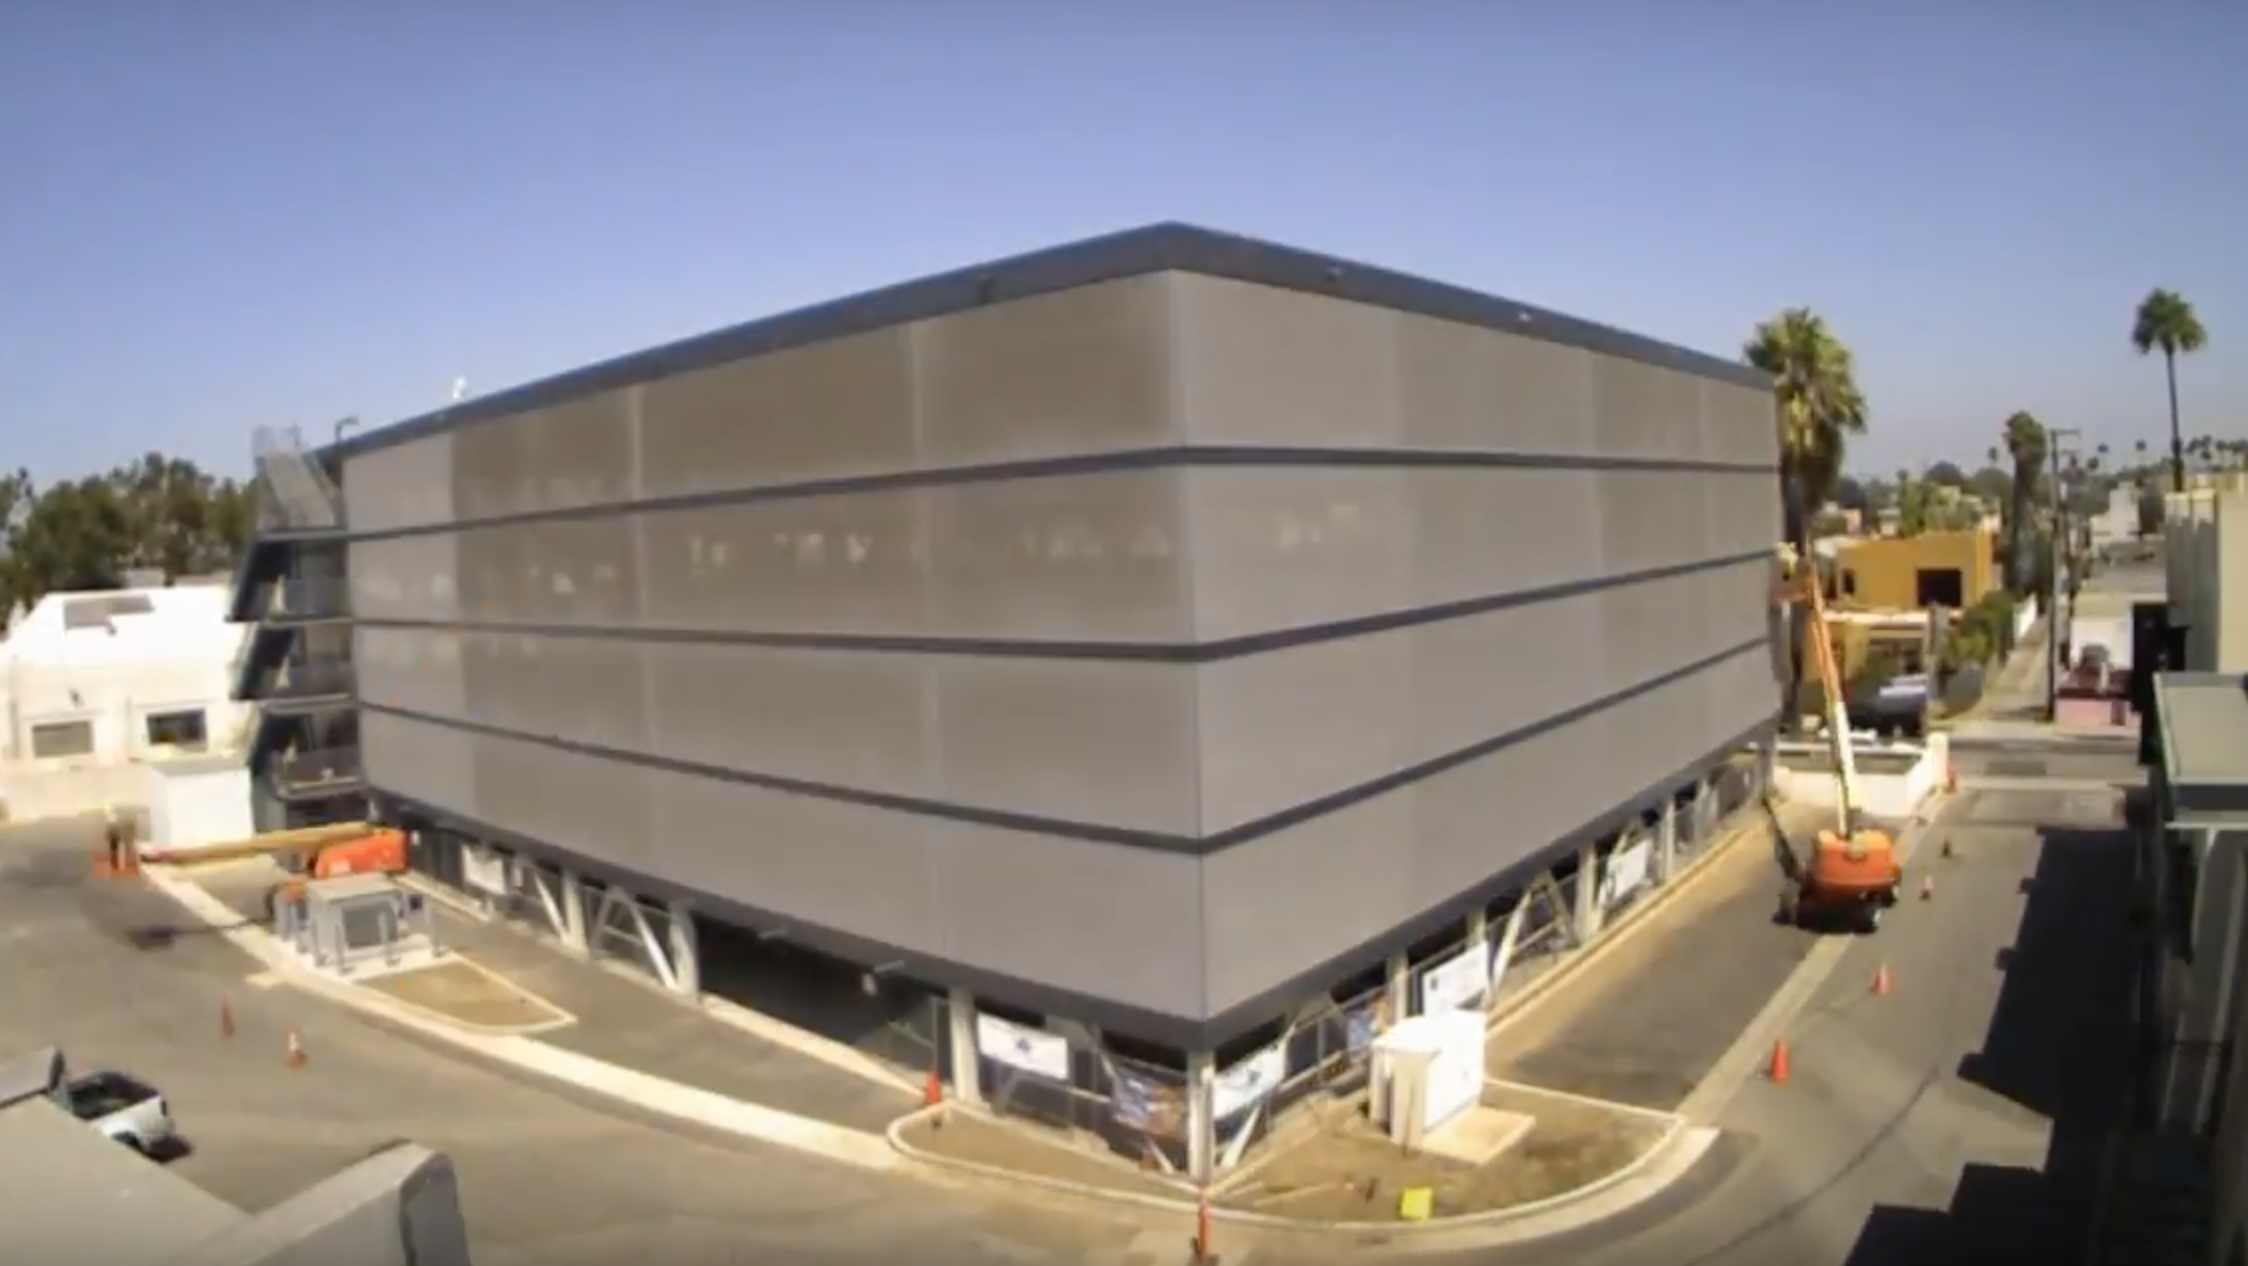 Project Highlight: Helms Bakery Parking Structure Facade